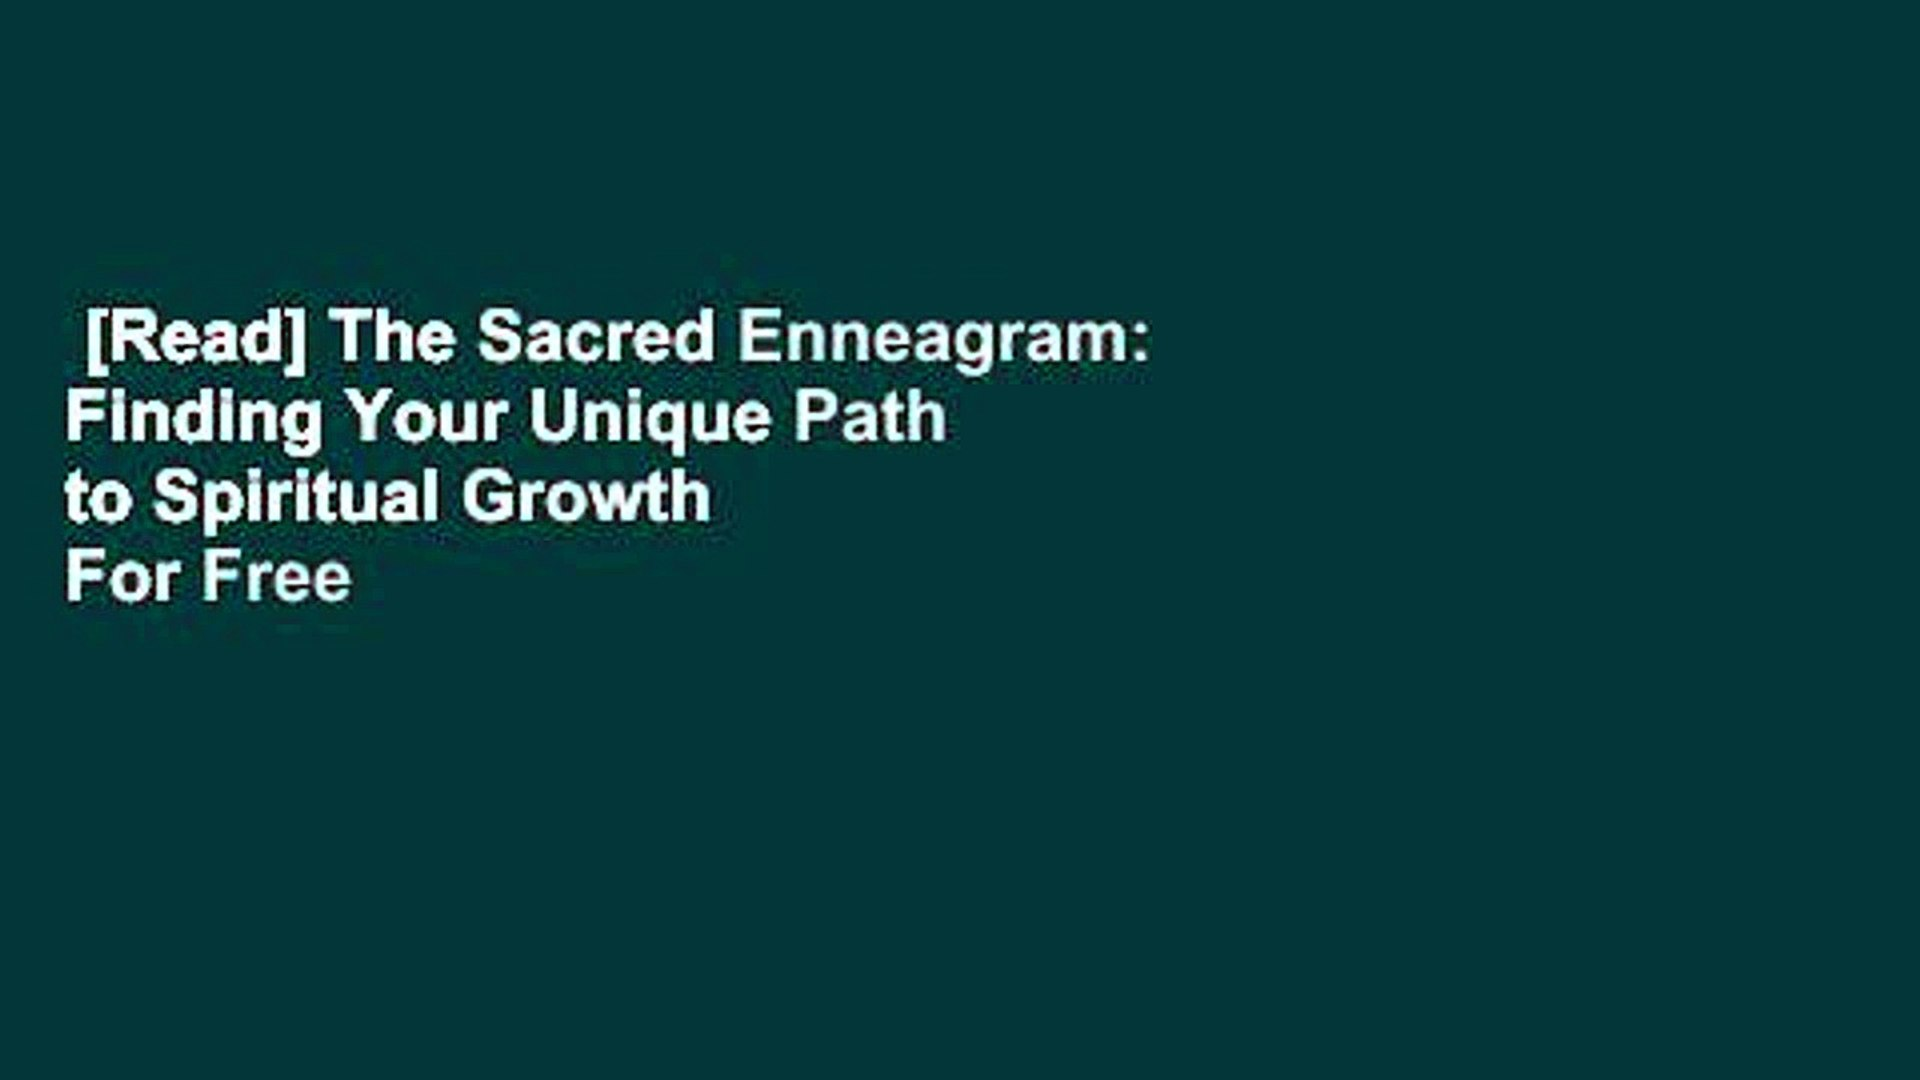 [Read] The Sacred Enneagram: Finding Your Unique Path to Spiritual Growth  For Free